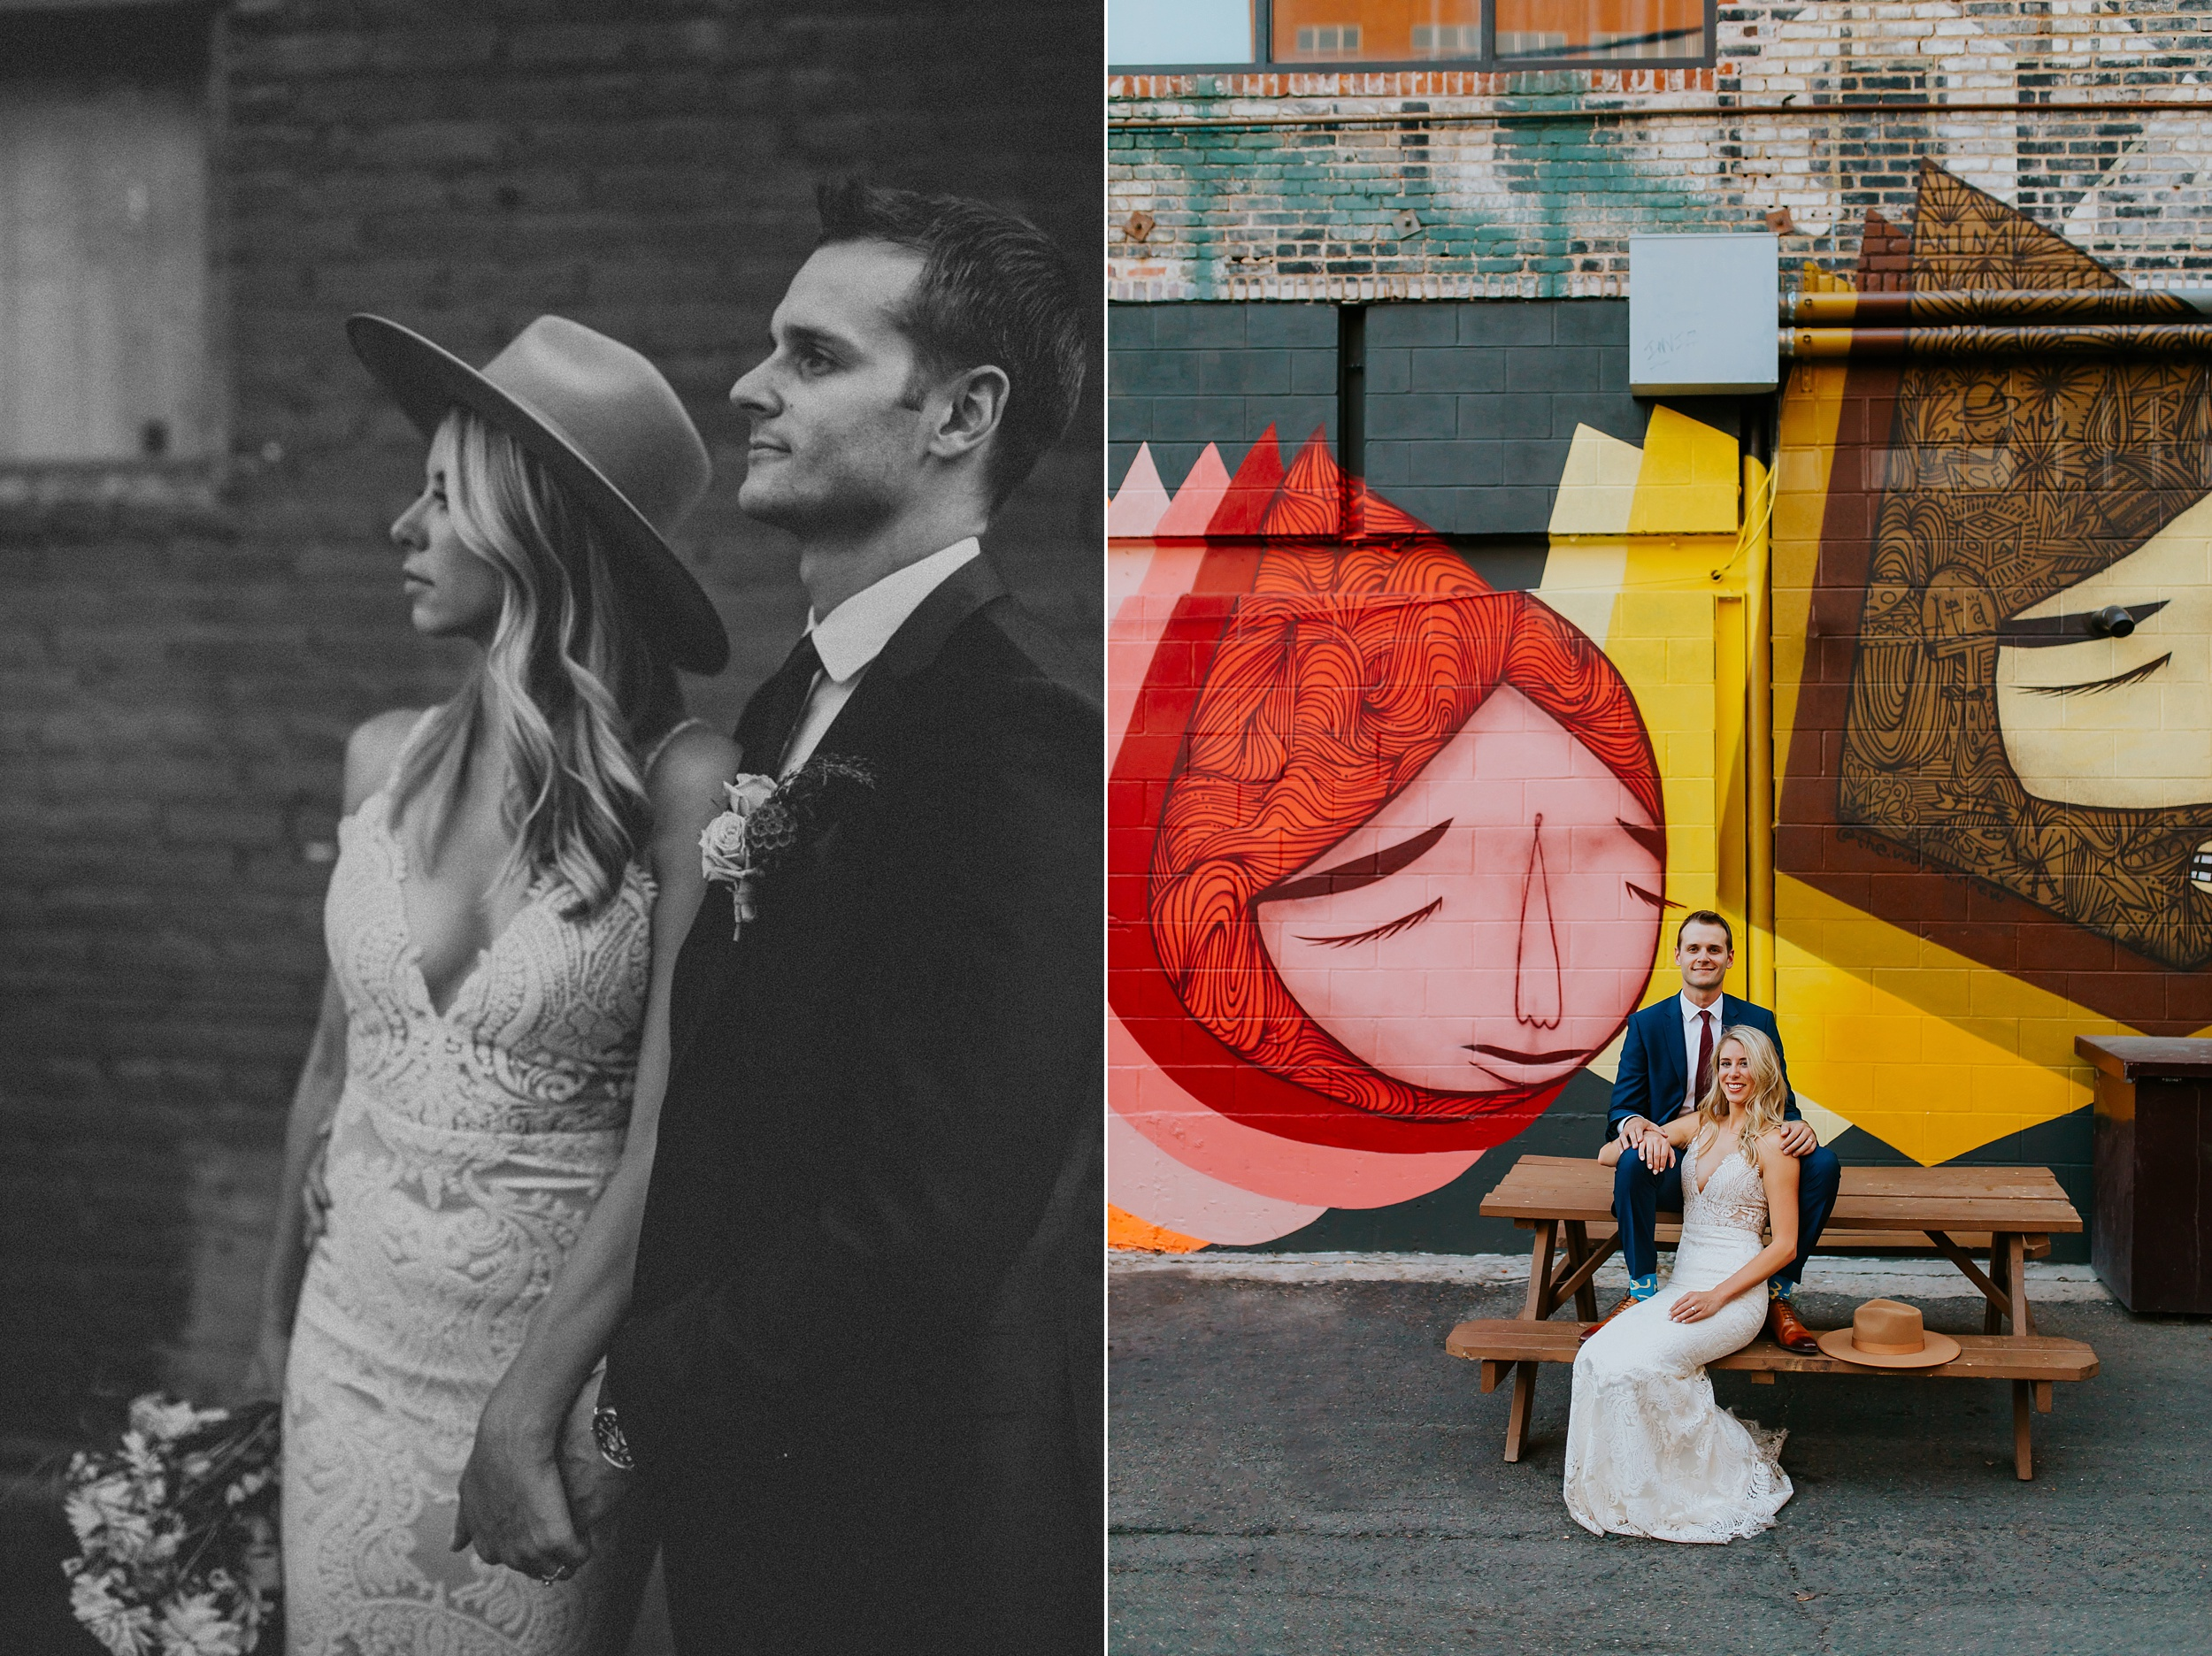 DowntownDenver_Colorado_Elopement_Anniversary_Session_Urban_Edit-25.jpg